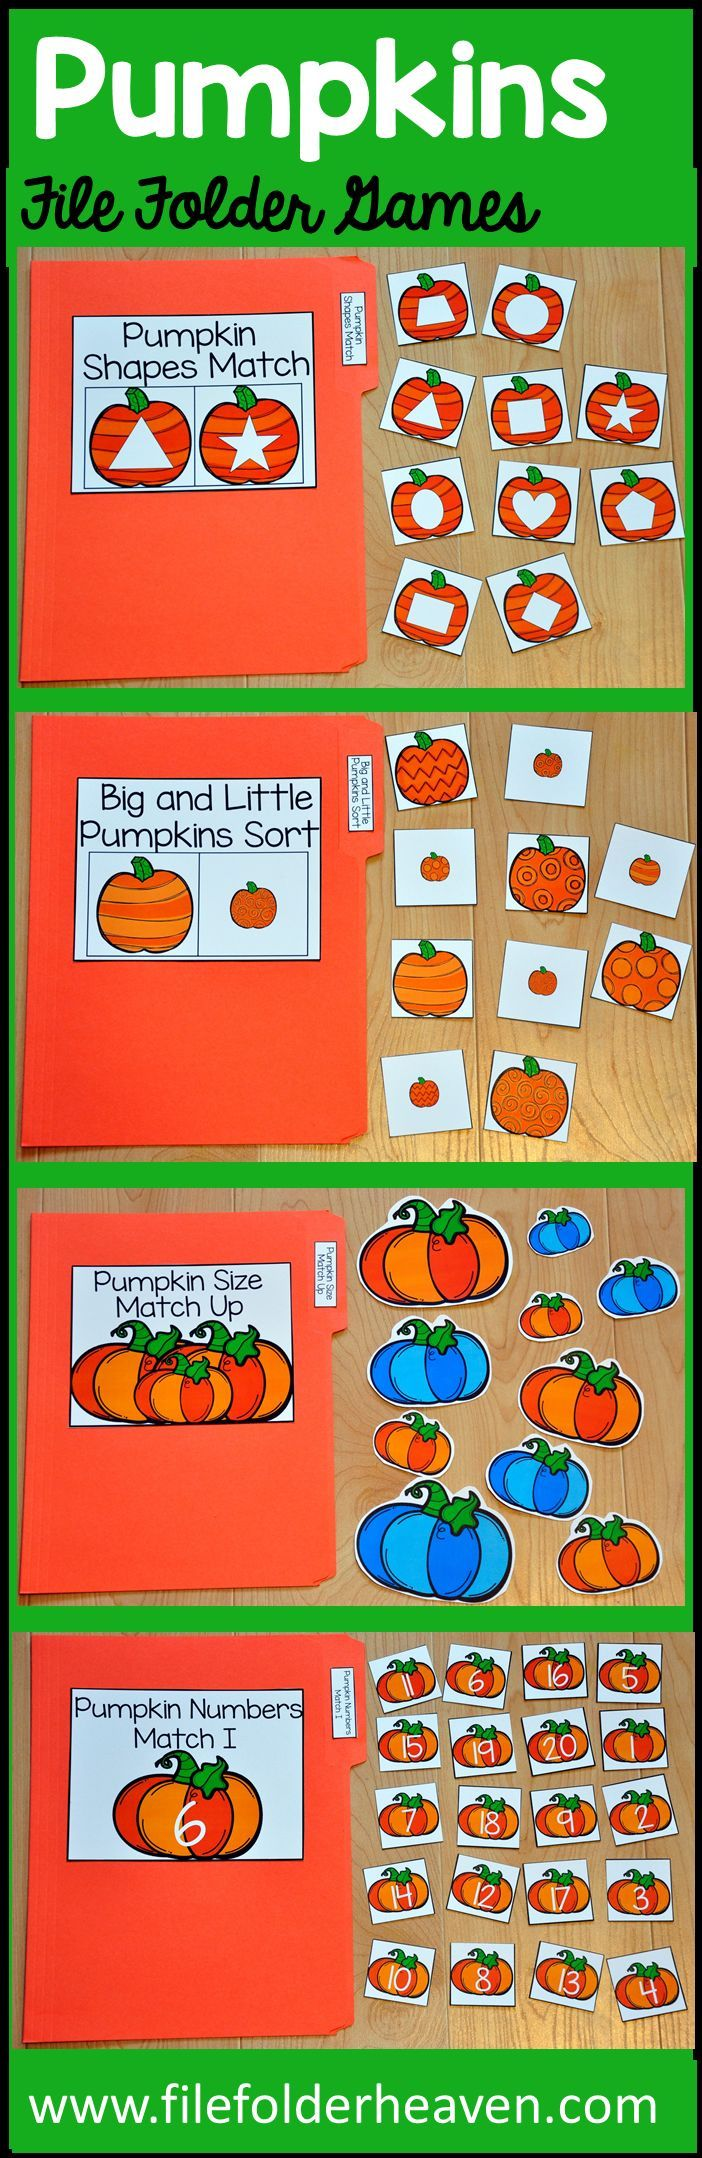 This Pumpkins File Folder Games Mini-Bundle is fall themed and  focuses on basic matching and sorting skills.    This set includes eight unique file folder games with three bonus games for differentiation (for a total of 11 games!) These activities  focus on basic skills, such as matching picture to picture, matching shapes, matching numbers, matching letters, matching by size, sorting by size, sorting by color, and sorting by likeness and differences.